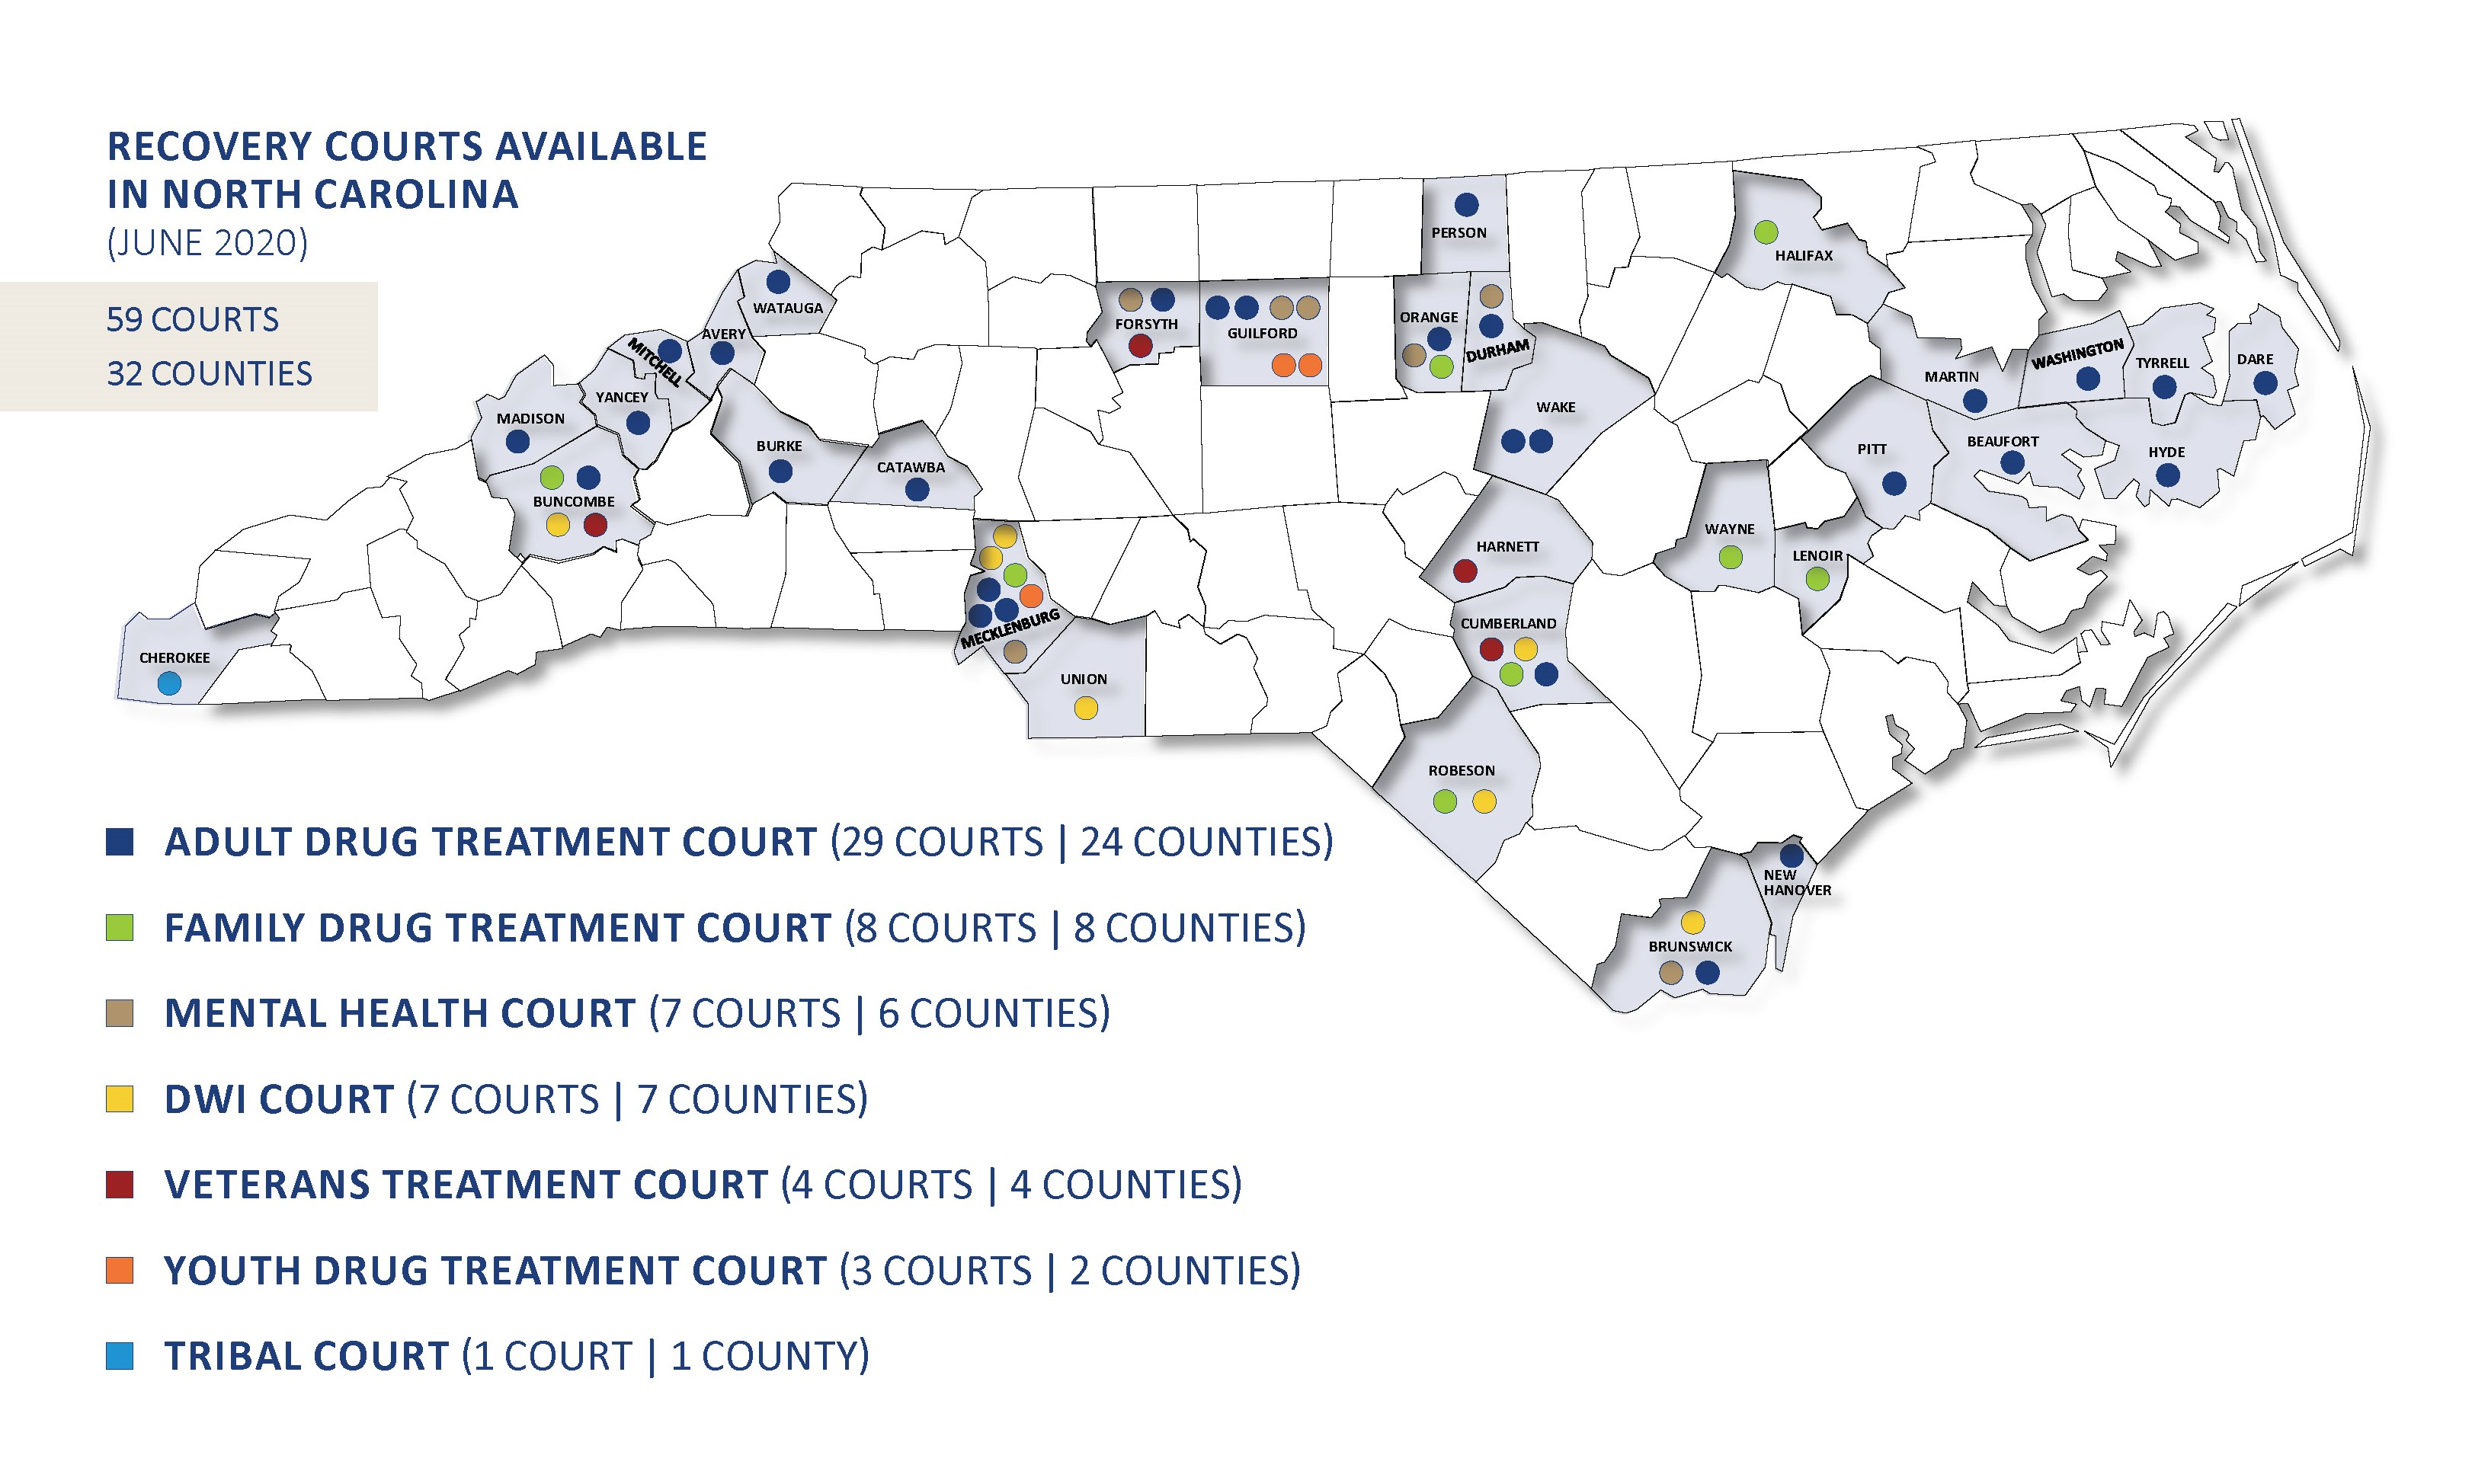 NC Recovery Courts Map